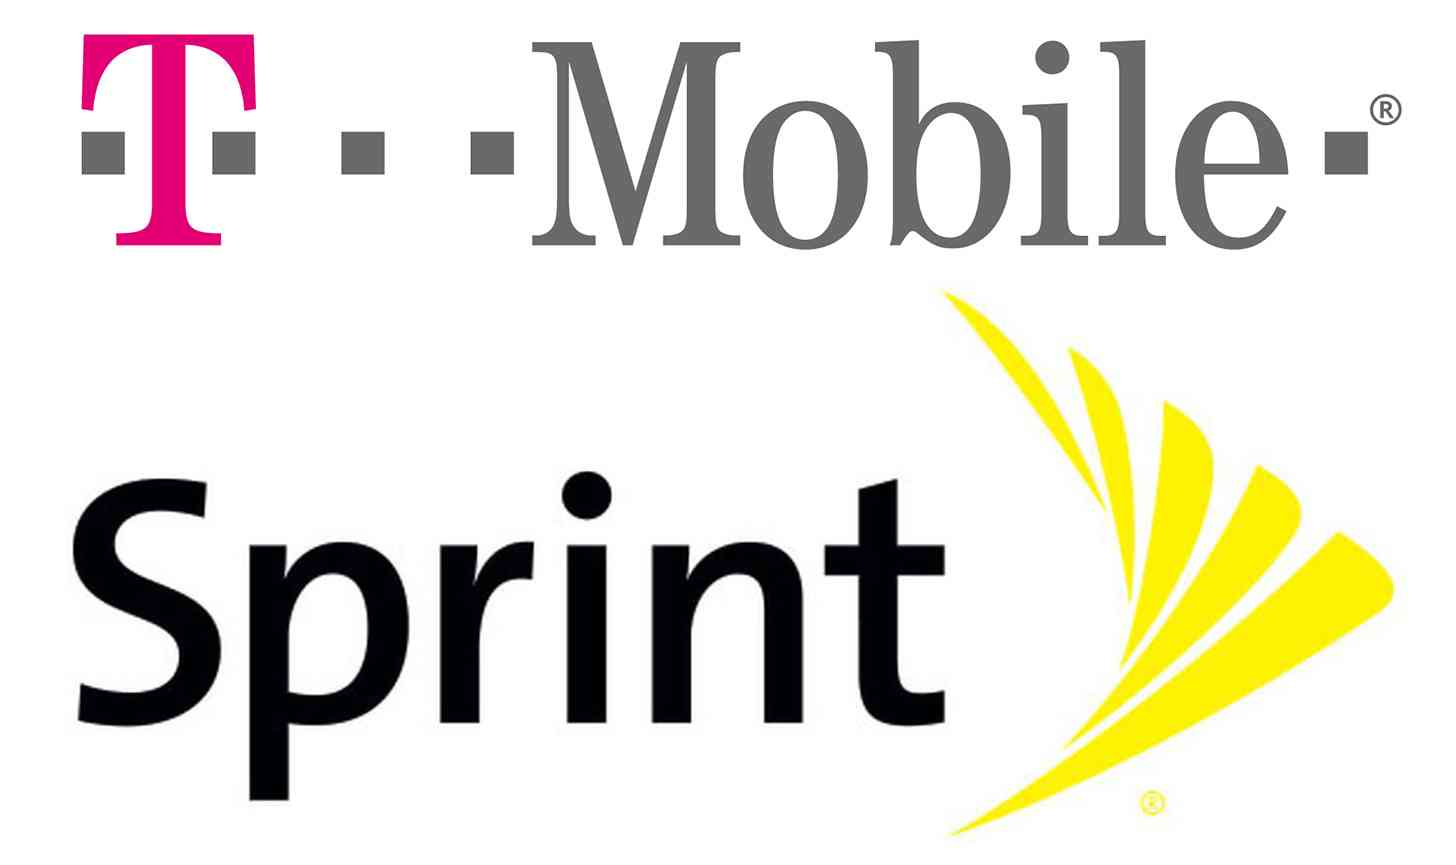 T-MOBILE Y SPRINT SUSPENDEN SU INTENTO DE FUSIÓN